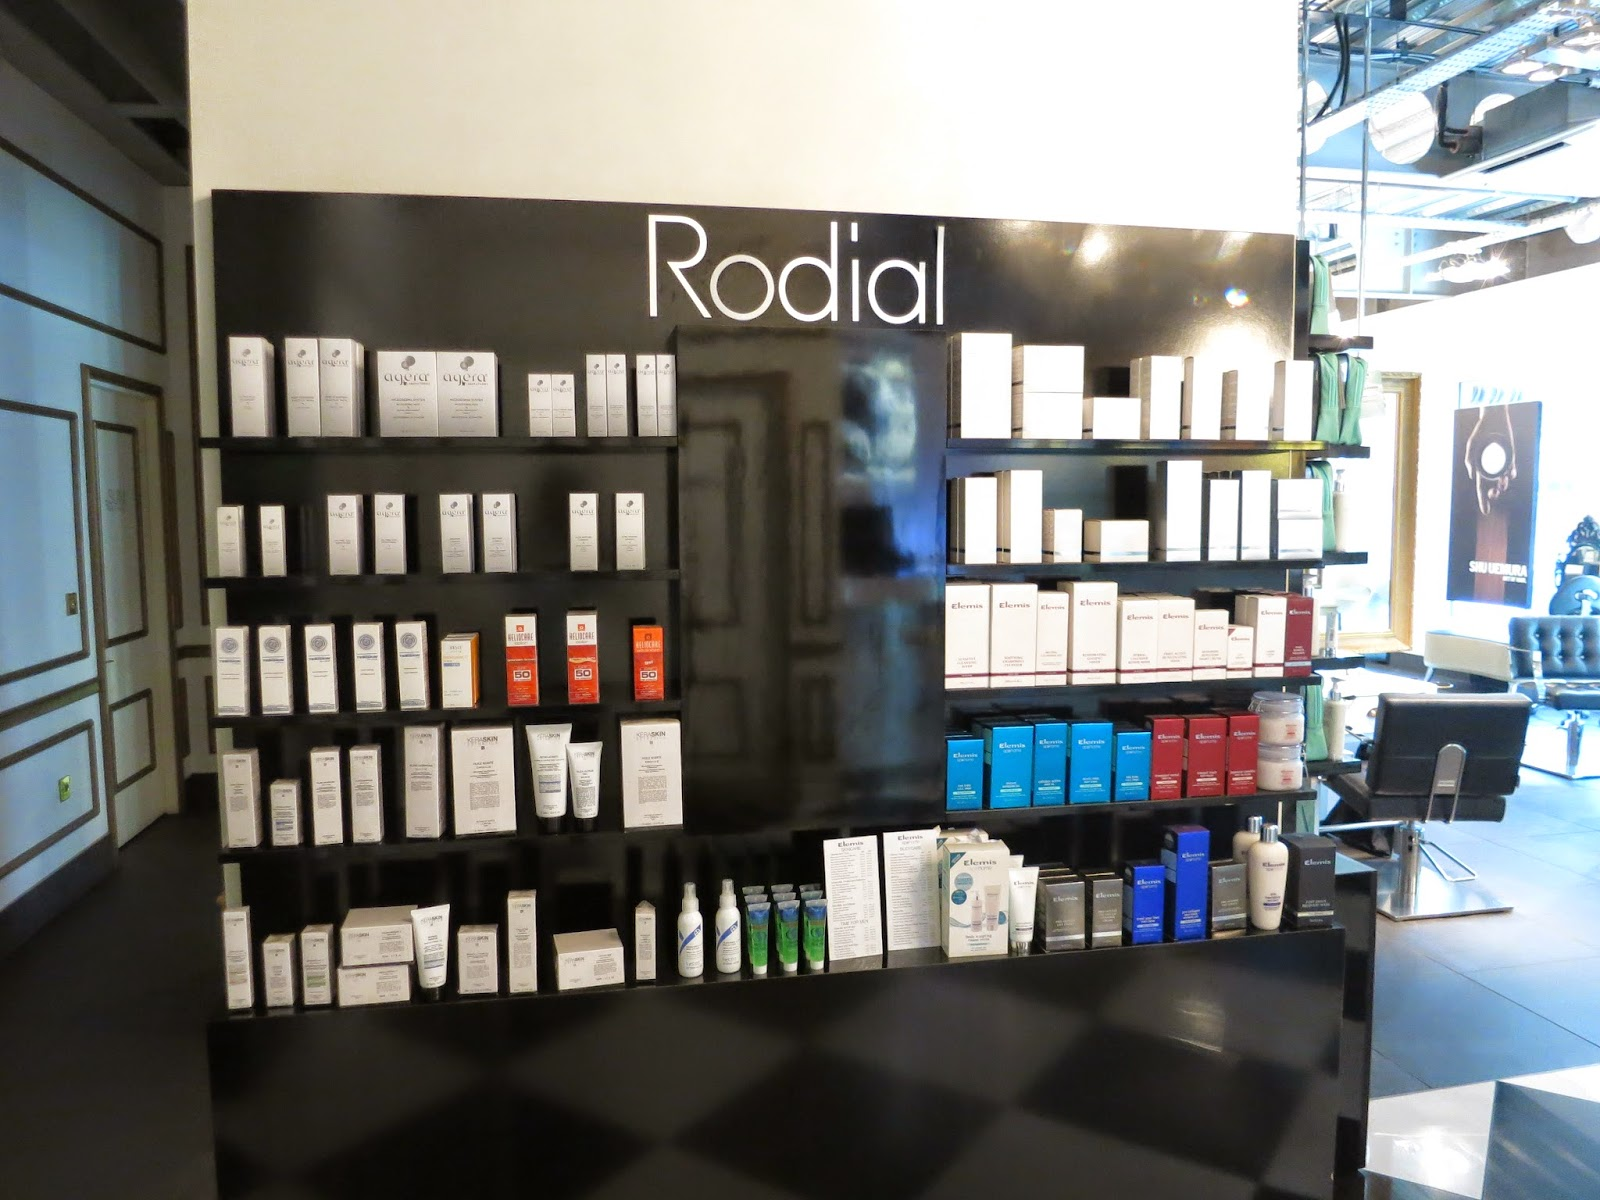 where to buy rodial